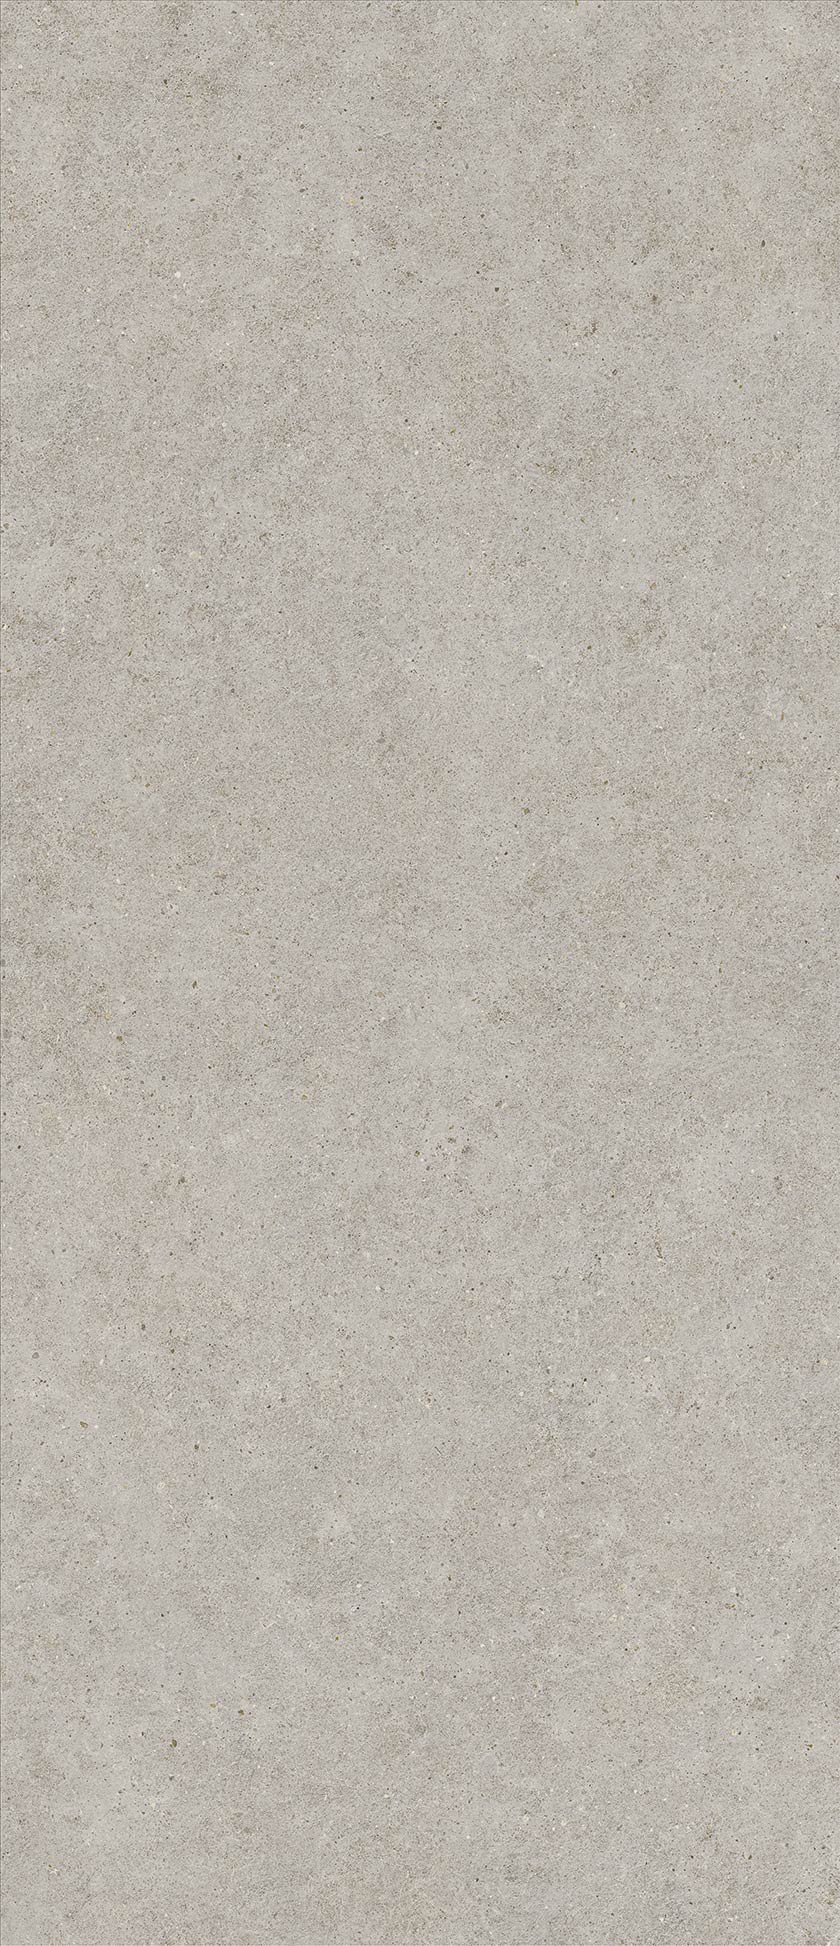 boost-stone-pearl-large-sizeboost-stone-pearl-large-size-6mm-thick-outdoor-tiles